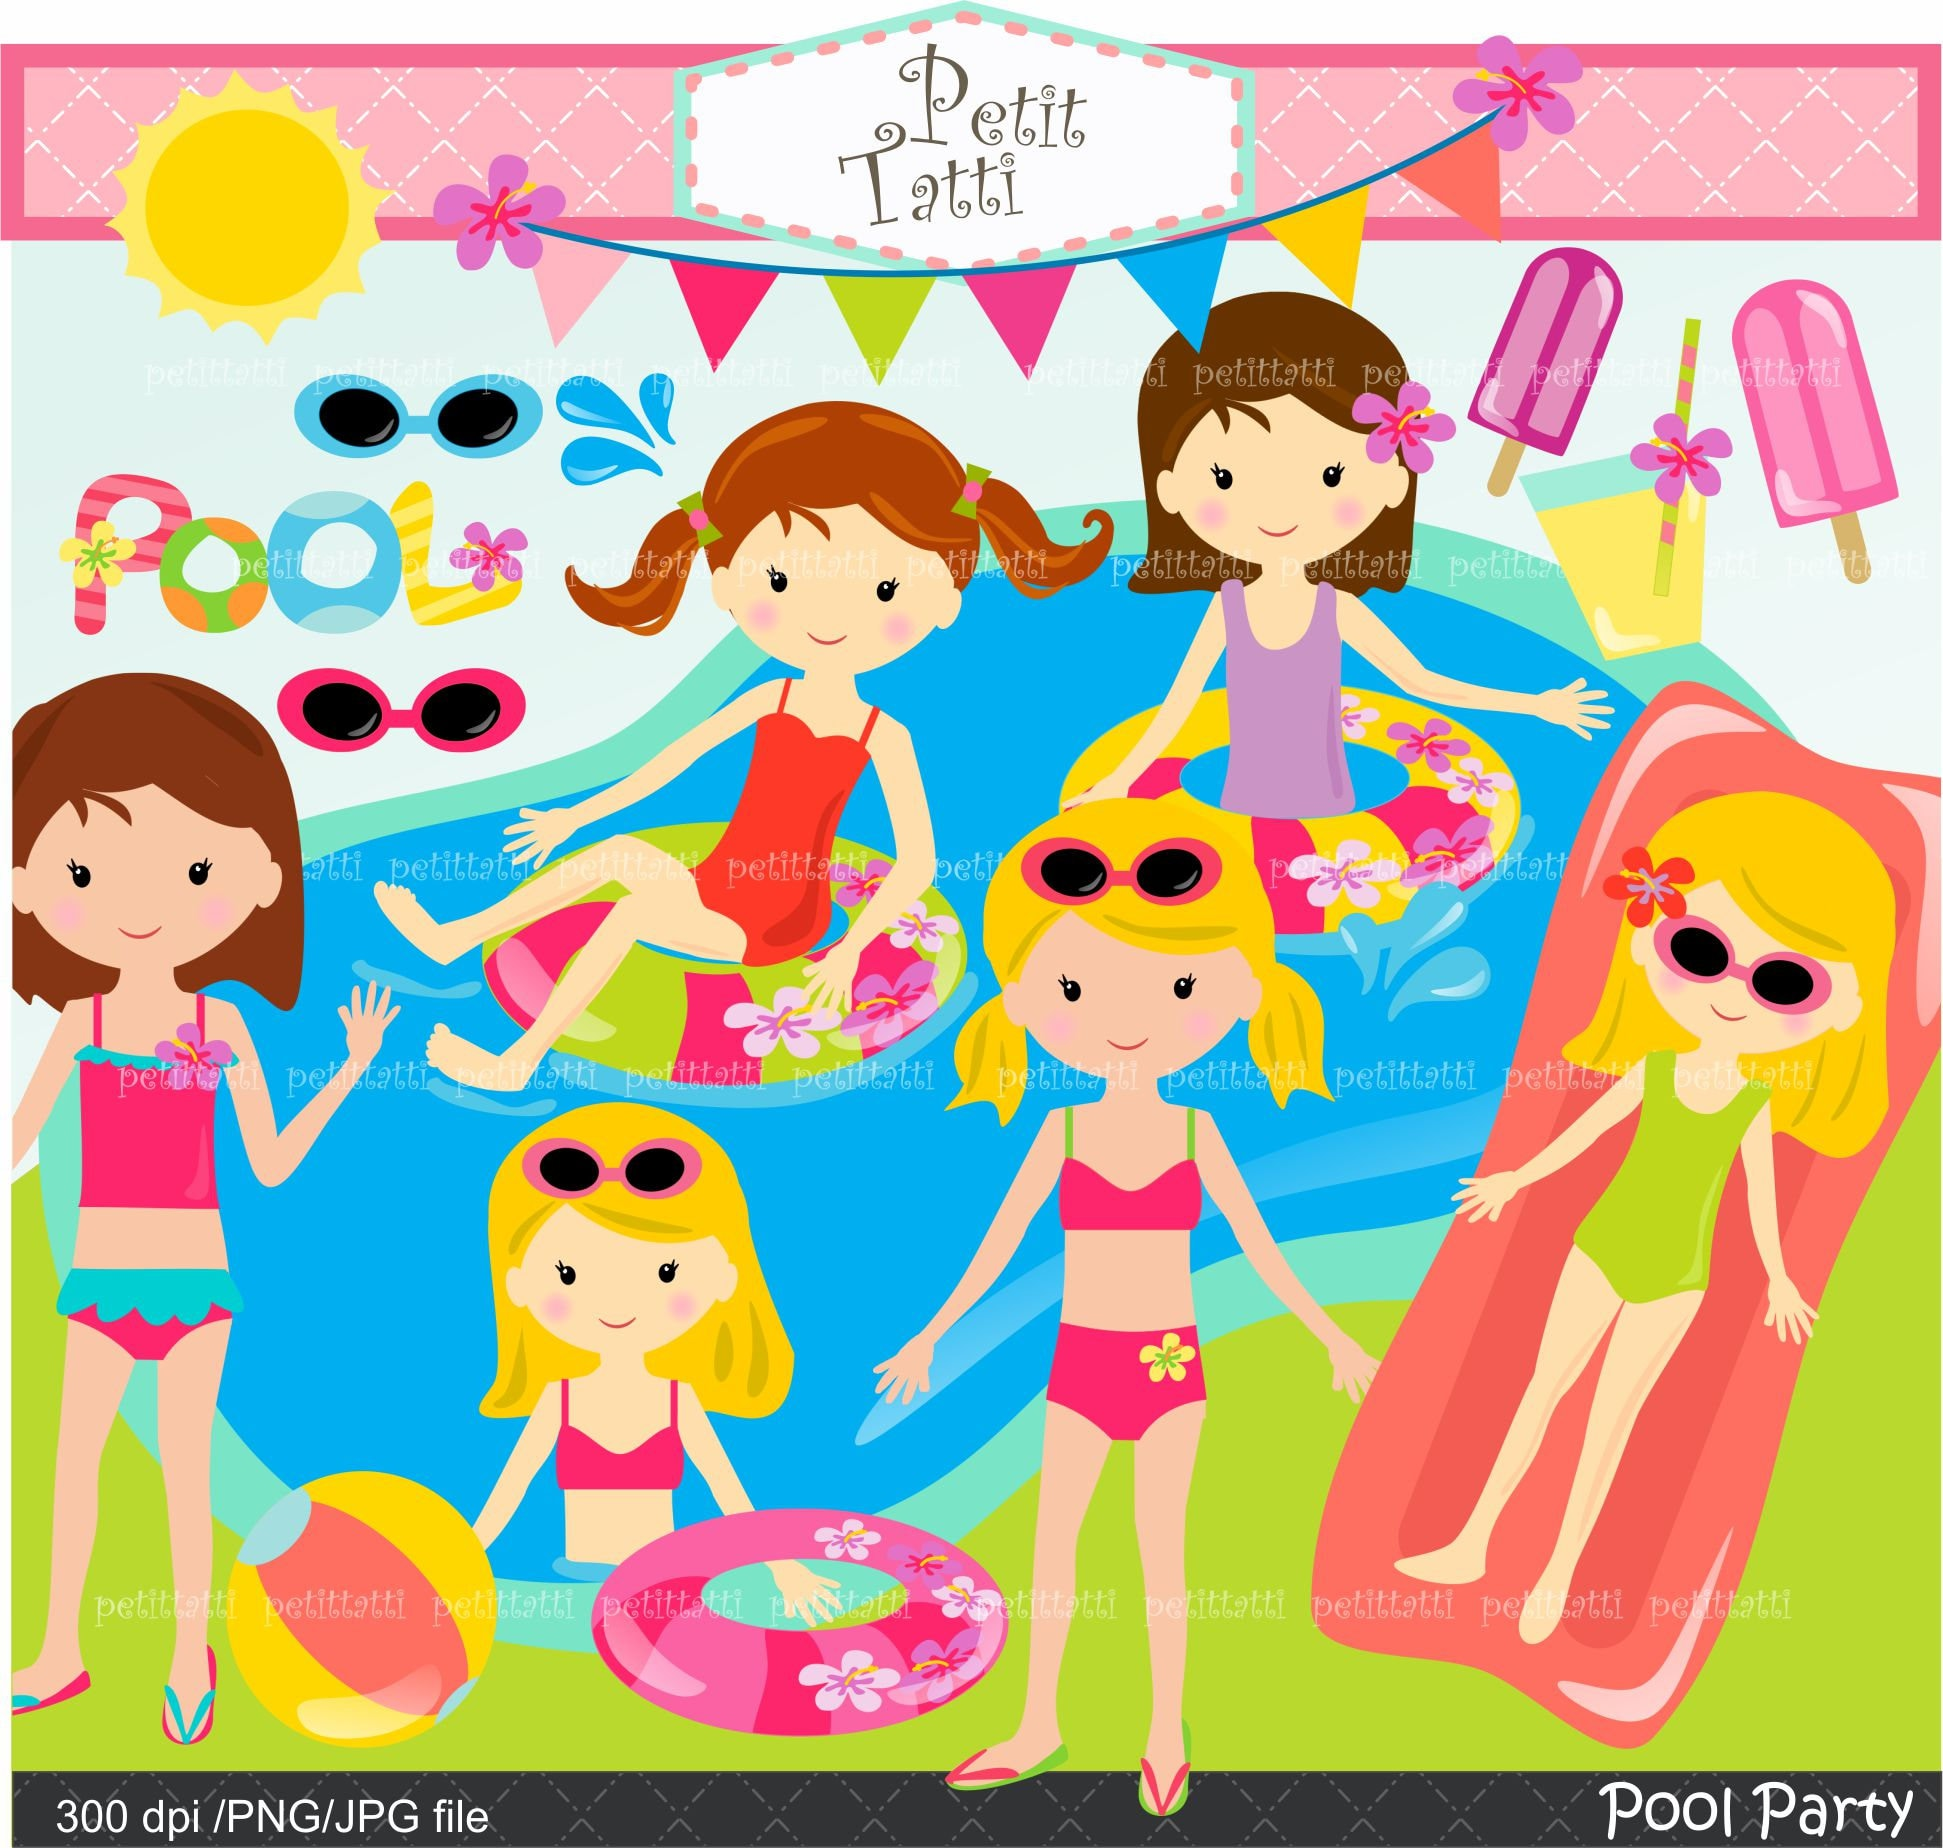 AUF Verkauf Pool Party Clipart / Pool-Party-ClipArt Mädchen | Etsy